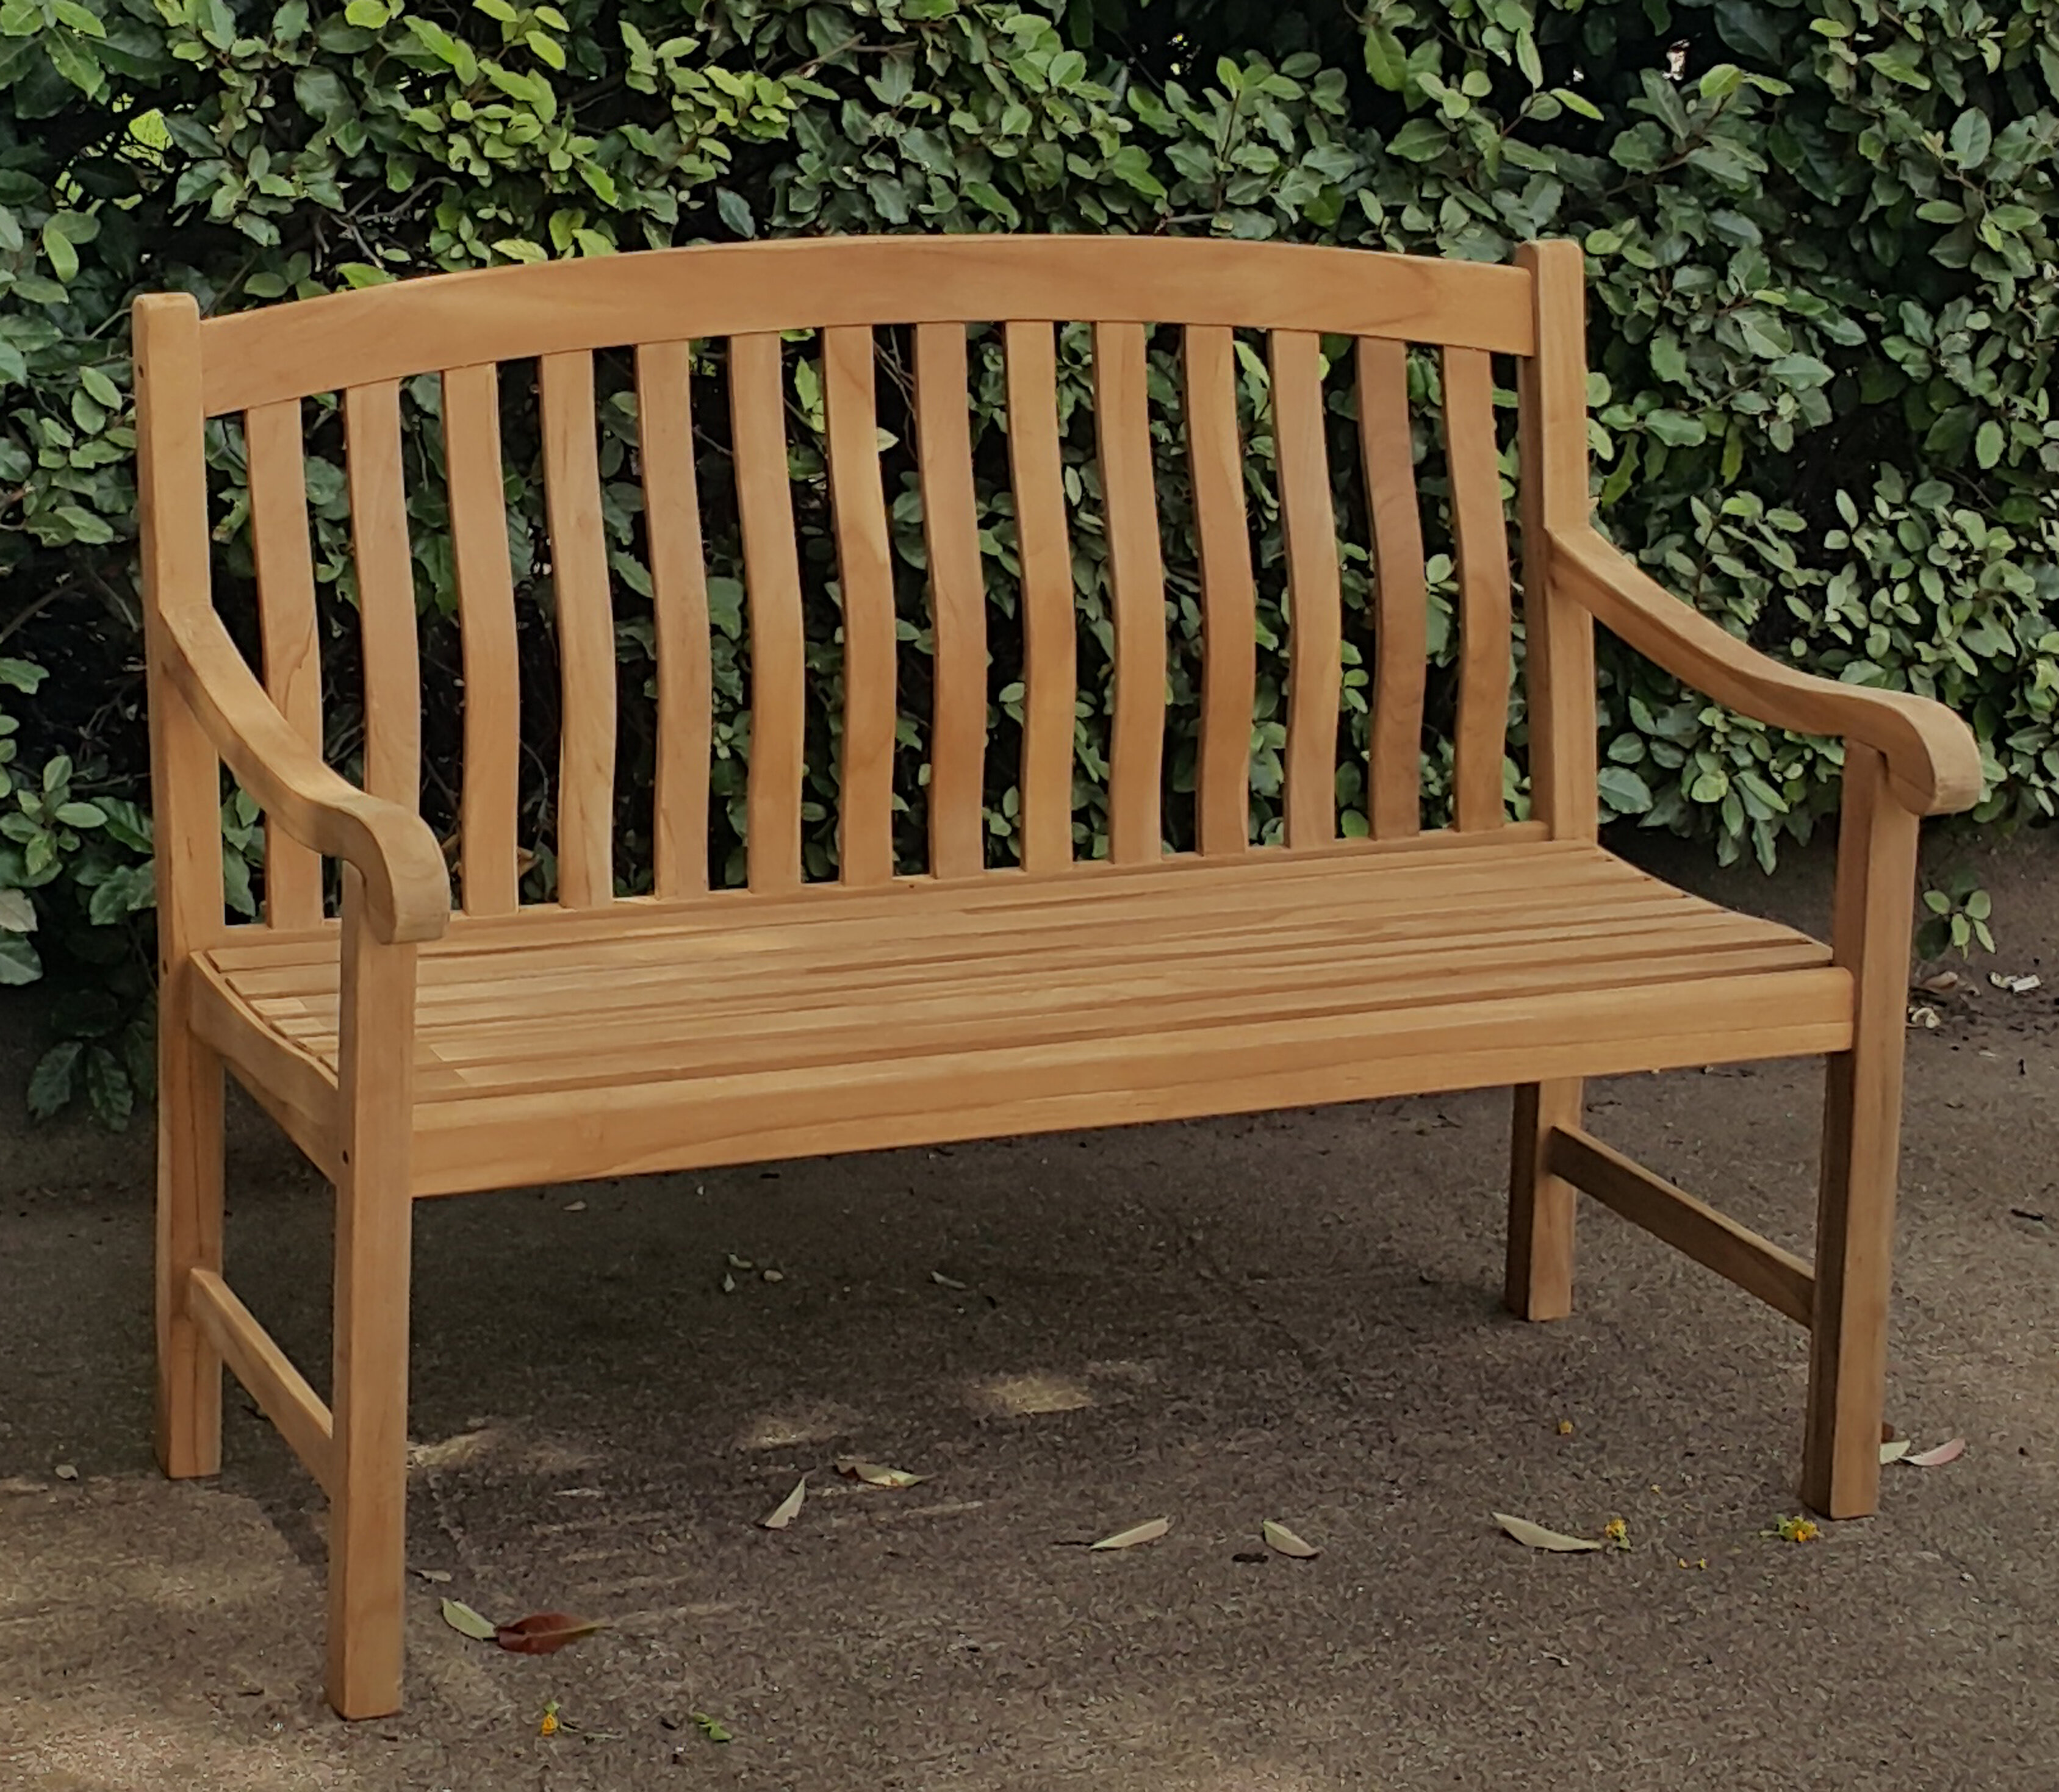 garden seat on design l benchthis the based symmetrical bench of famous single style marlboro edwin was outdoor architect sir lutyens teak